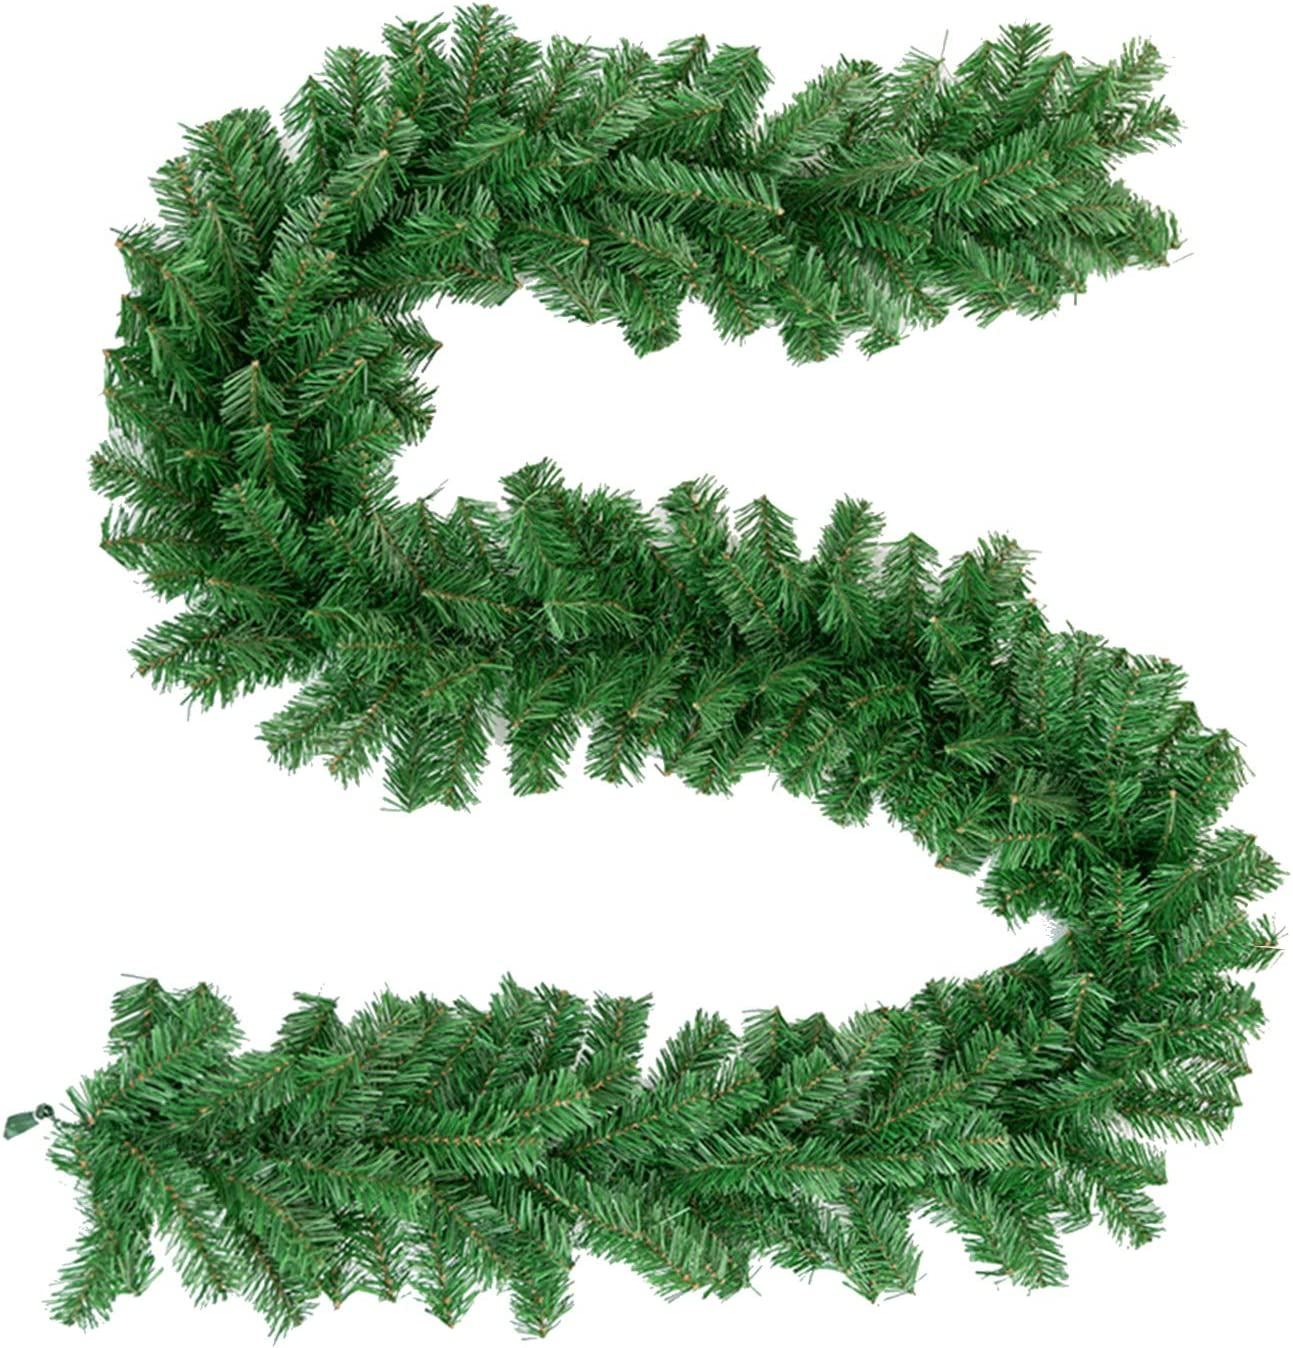 Oakmont Tree Artificial Spruce Christmas Garland 8.8 Foot Soft Green Holiday Decorations, Outdoor or Indoor Use, Wedding Party